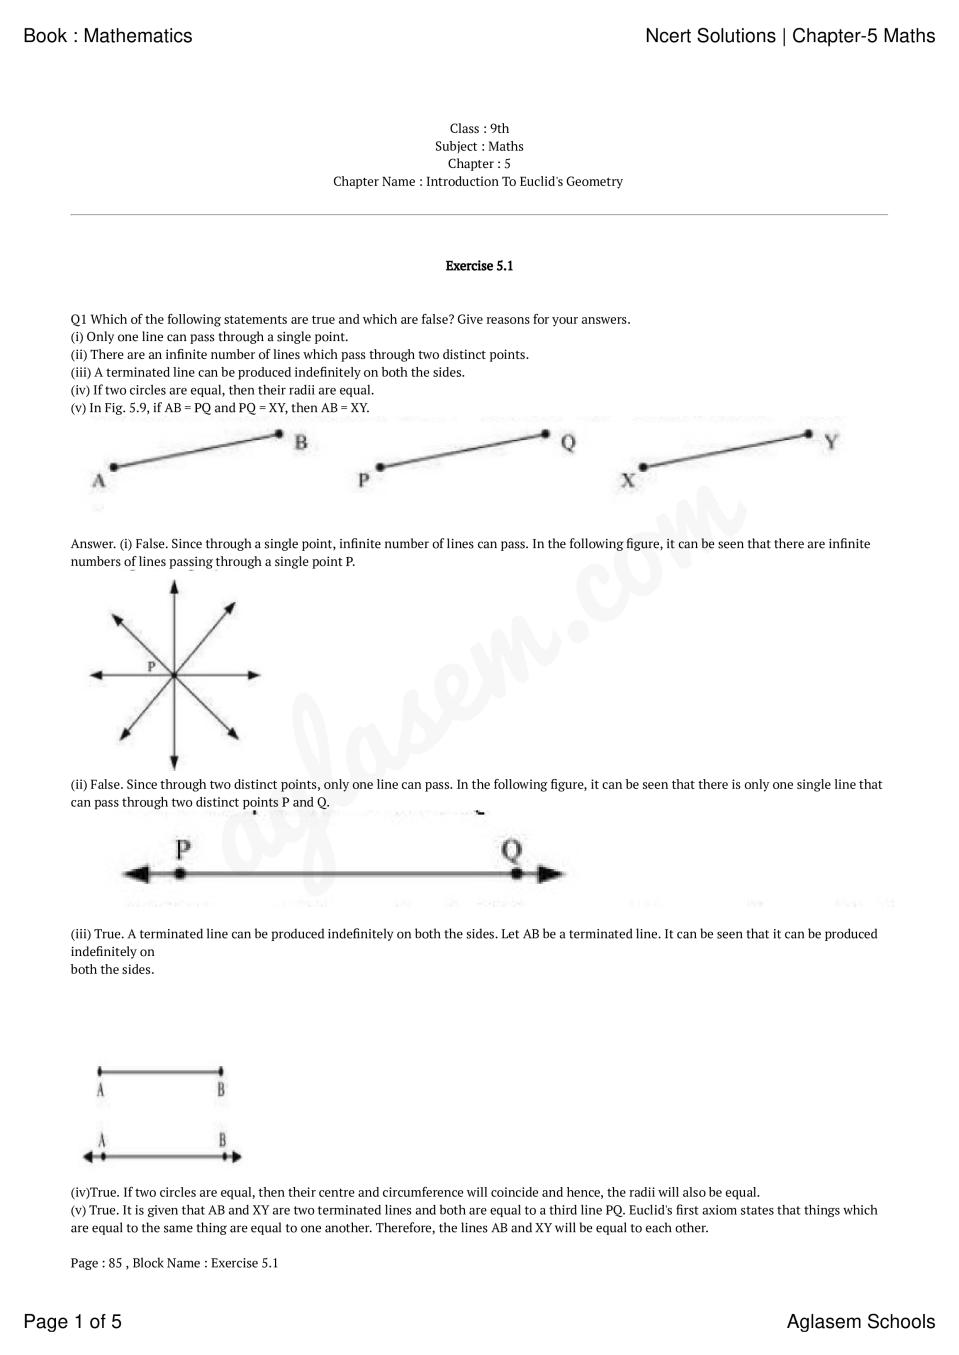 NCERT Solutions for Class 9 Maths Chapter 5 Introduction To